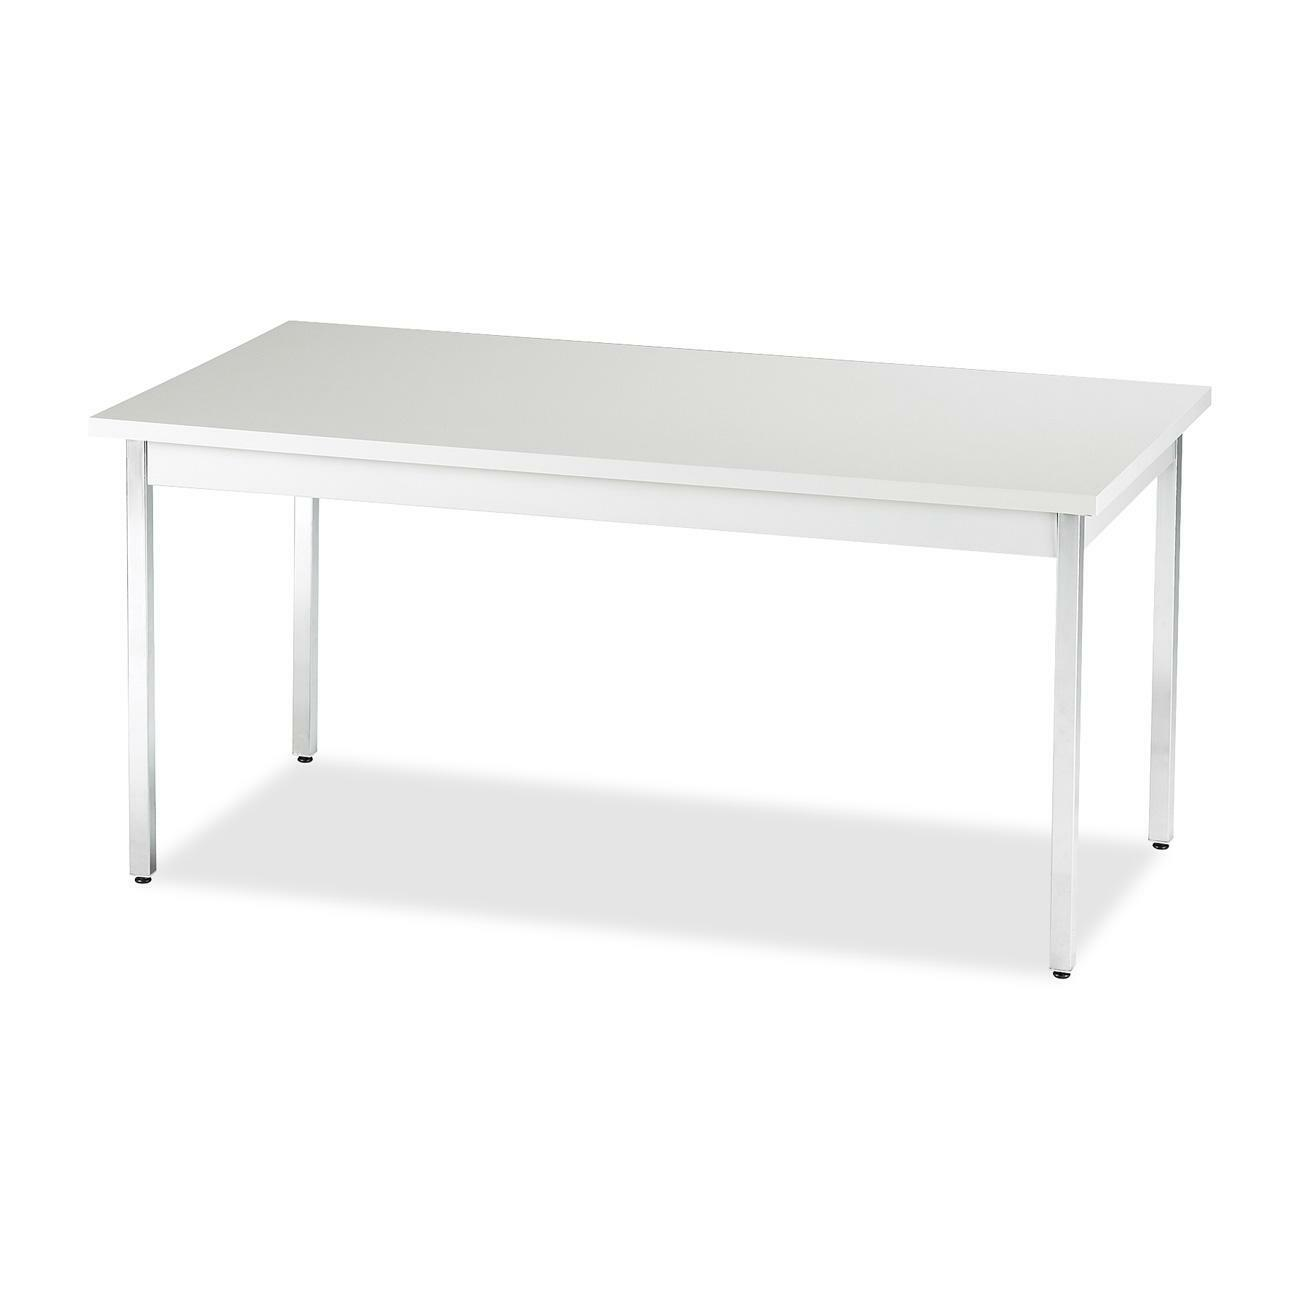 All Purpose Utility Table Has A Place In Every Work And Educational  Environment. Chrome Steel Legs And Square Edge Detail Are The Perfect  Complement For HON ...